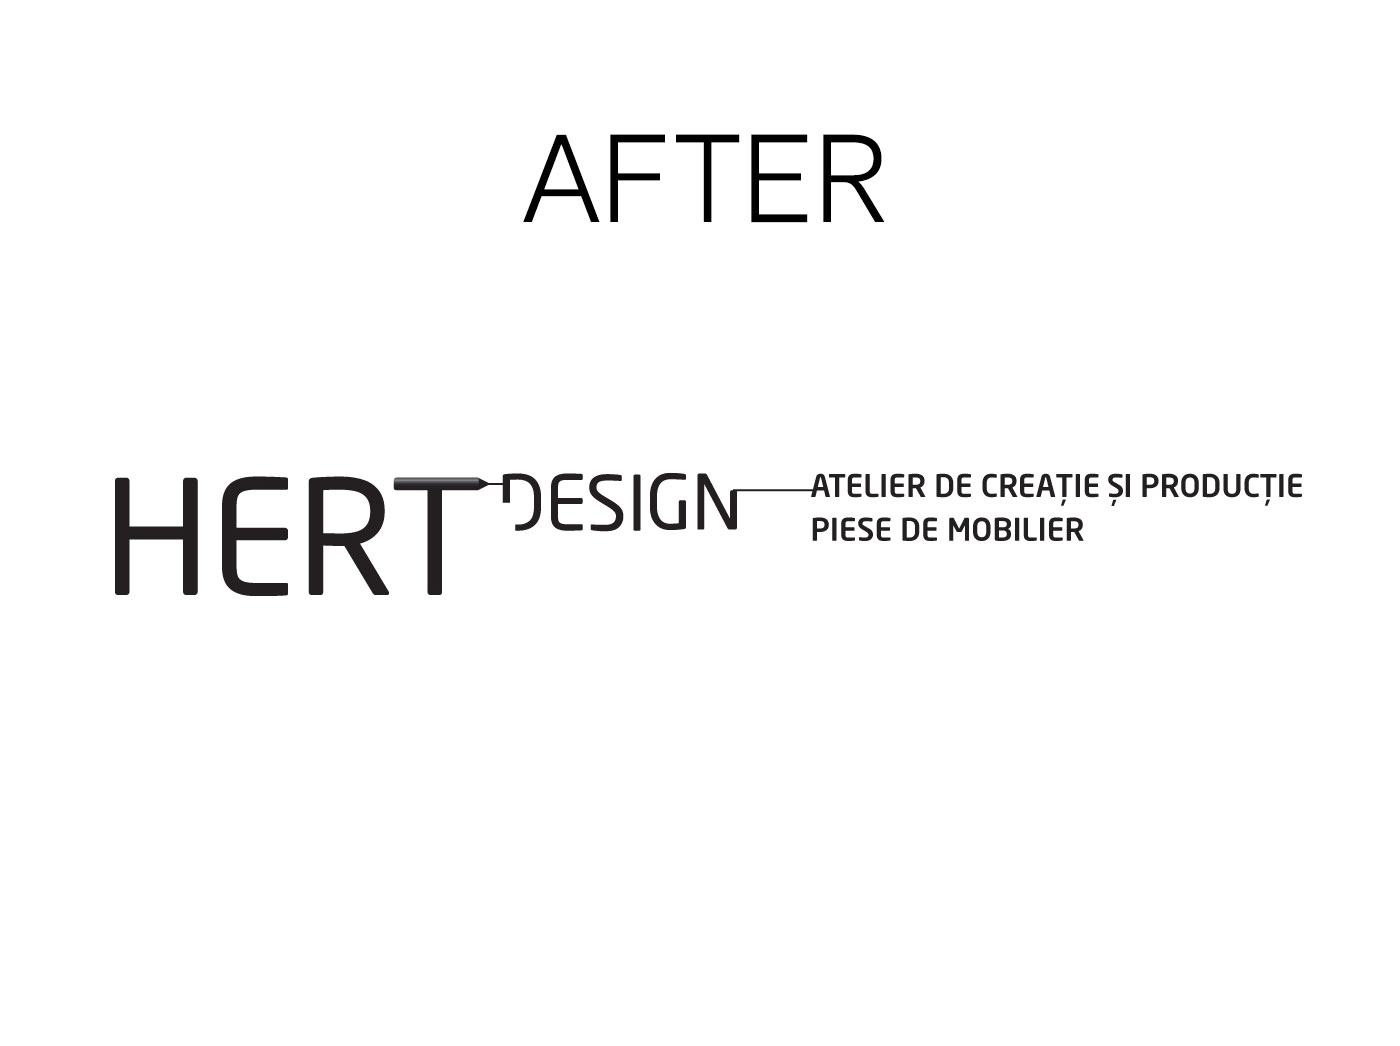 hert logo after rebranding